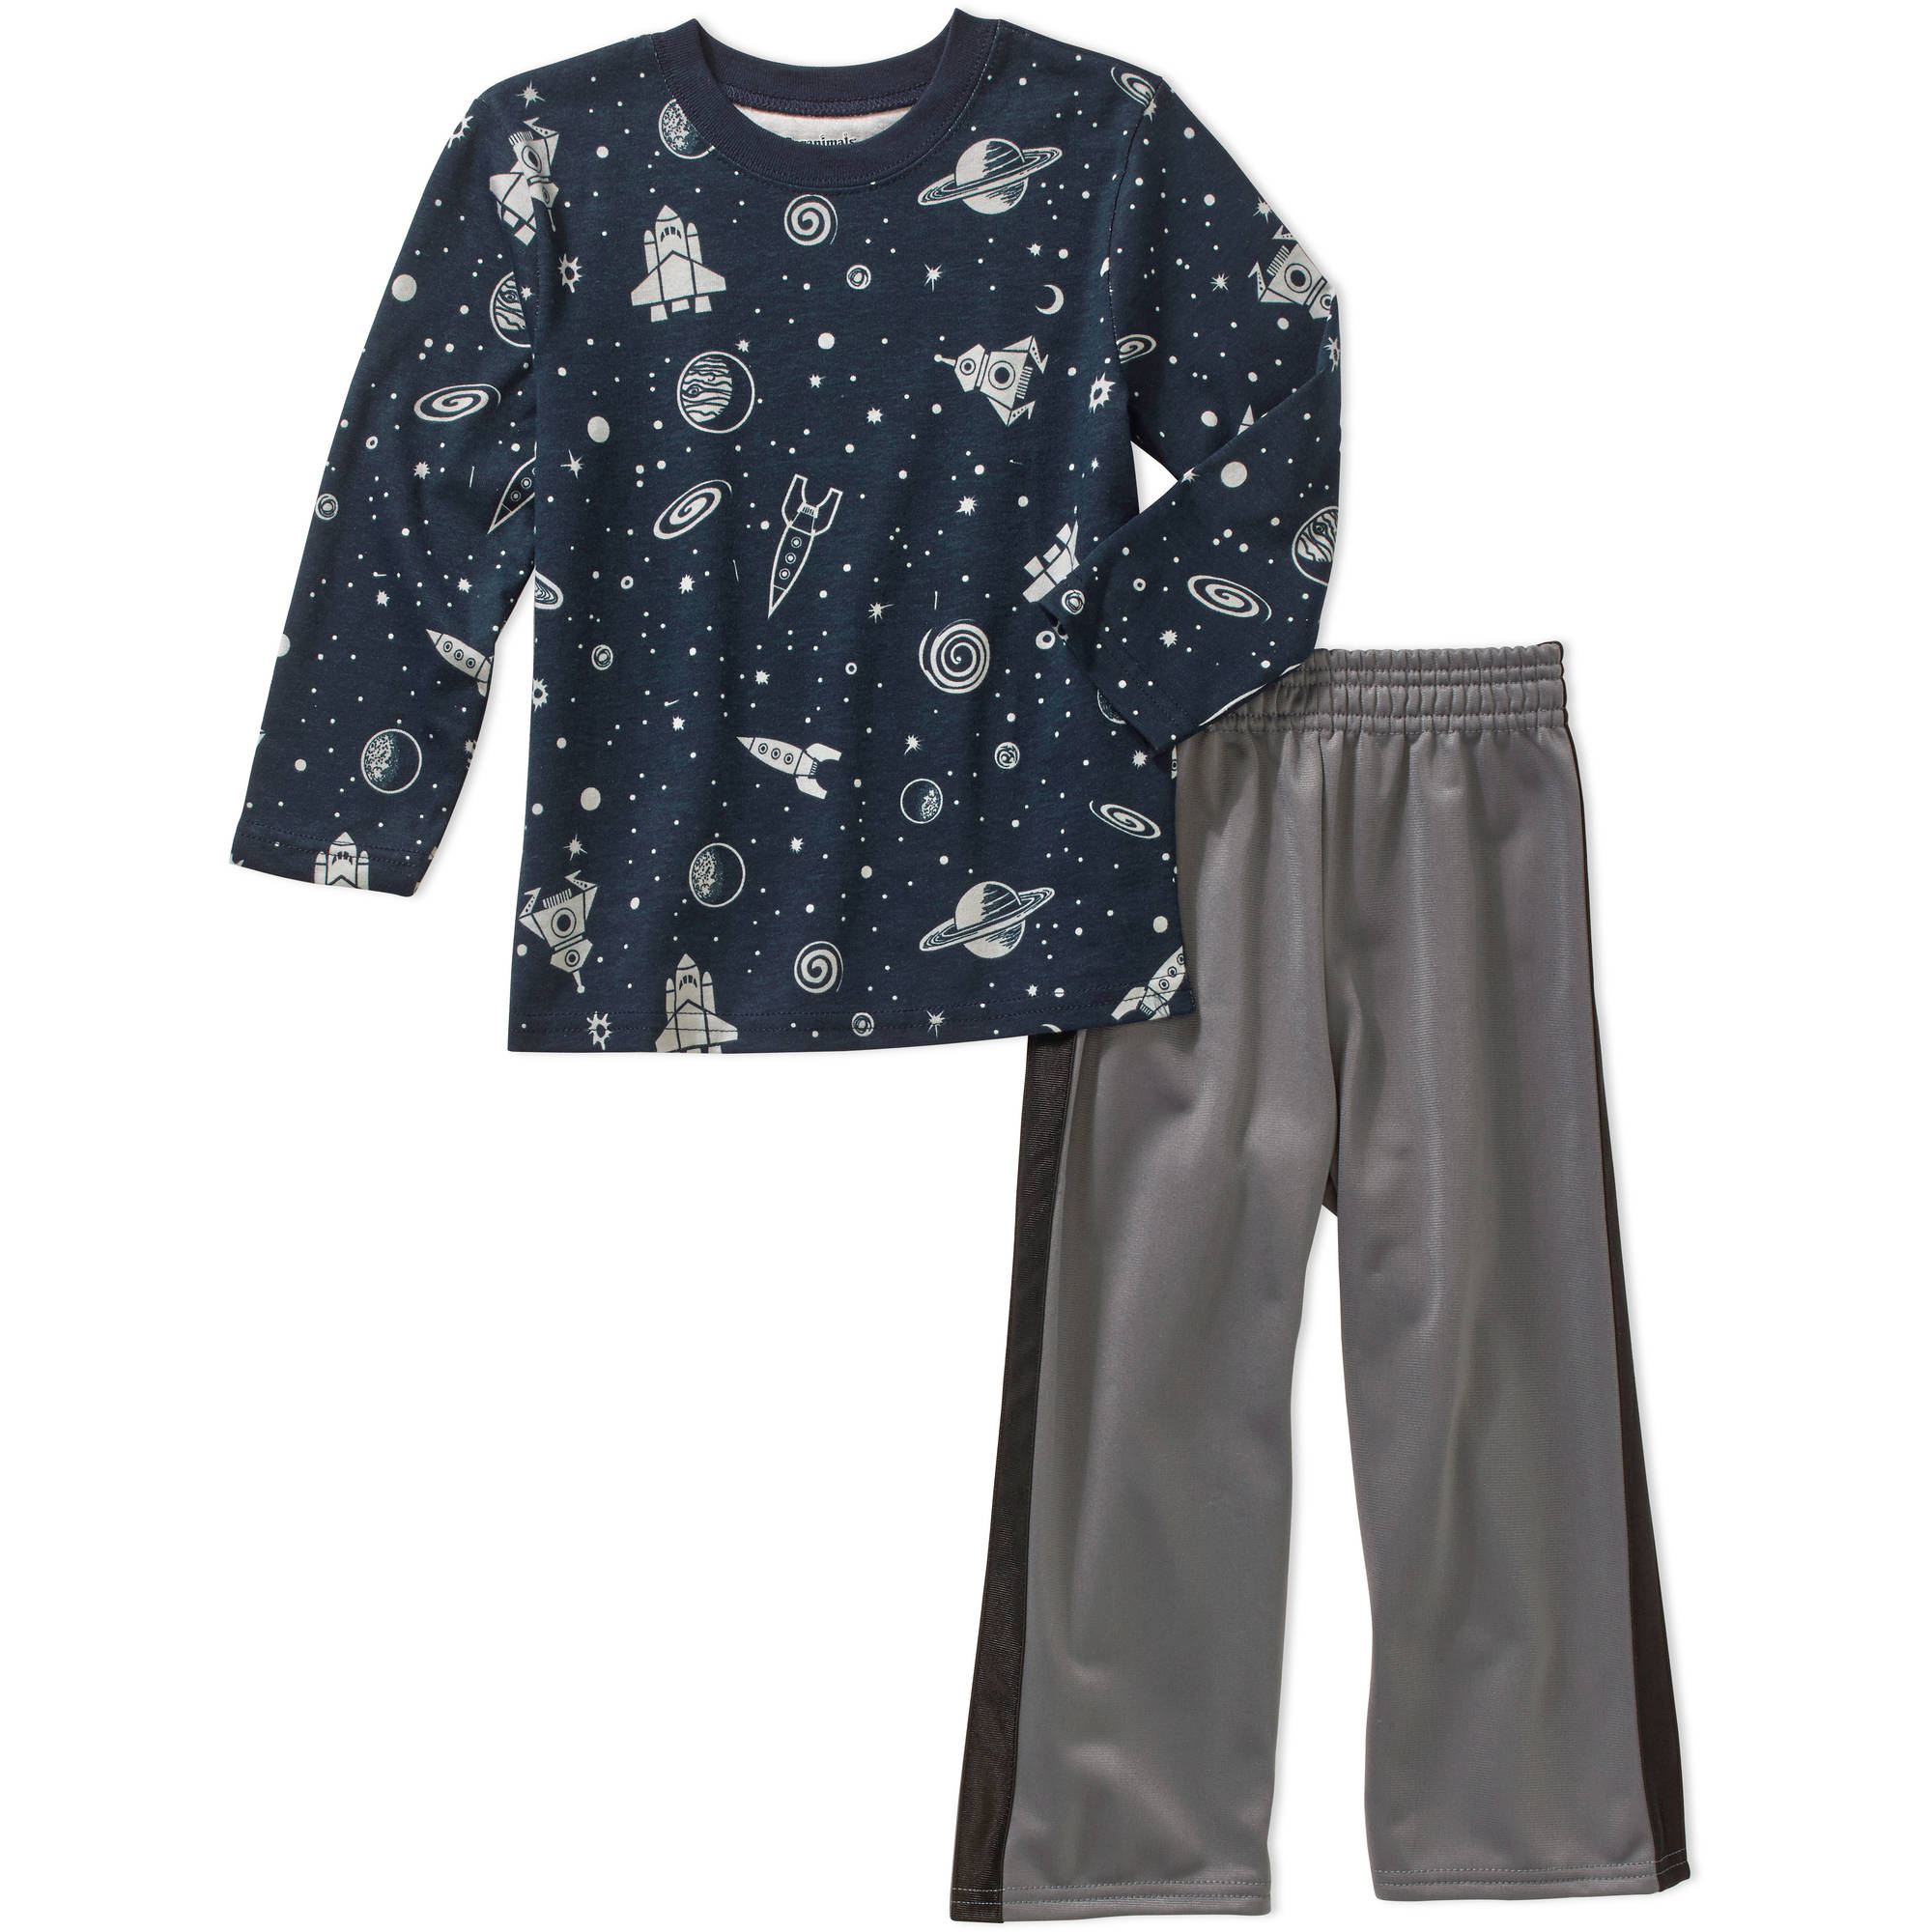 Garanimals Baby Toddler Boys' Long Sleeve Printed Tee and Tricot Pants 2-Piece Outfit Set